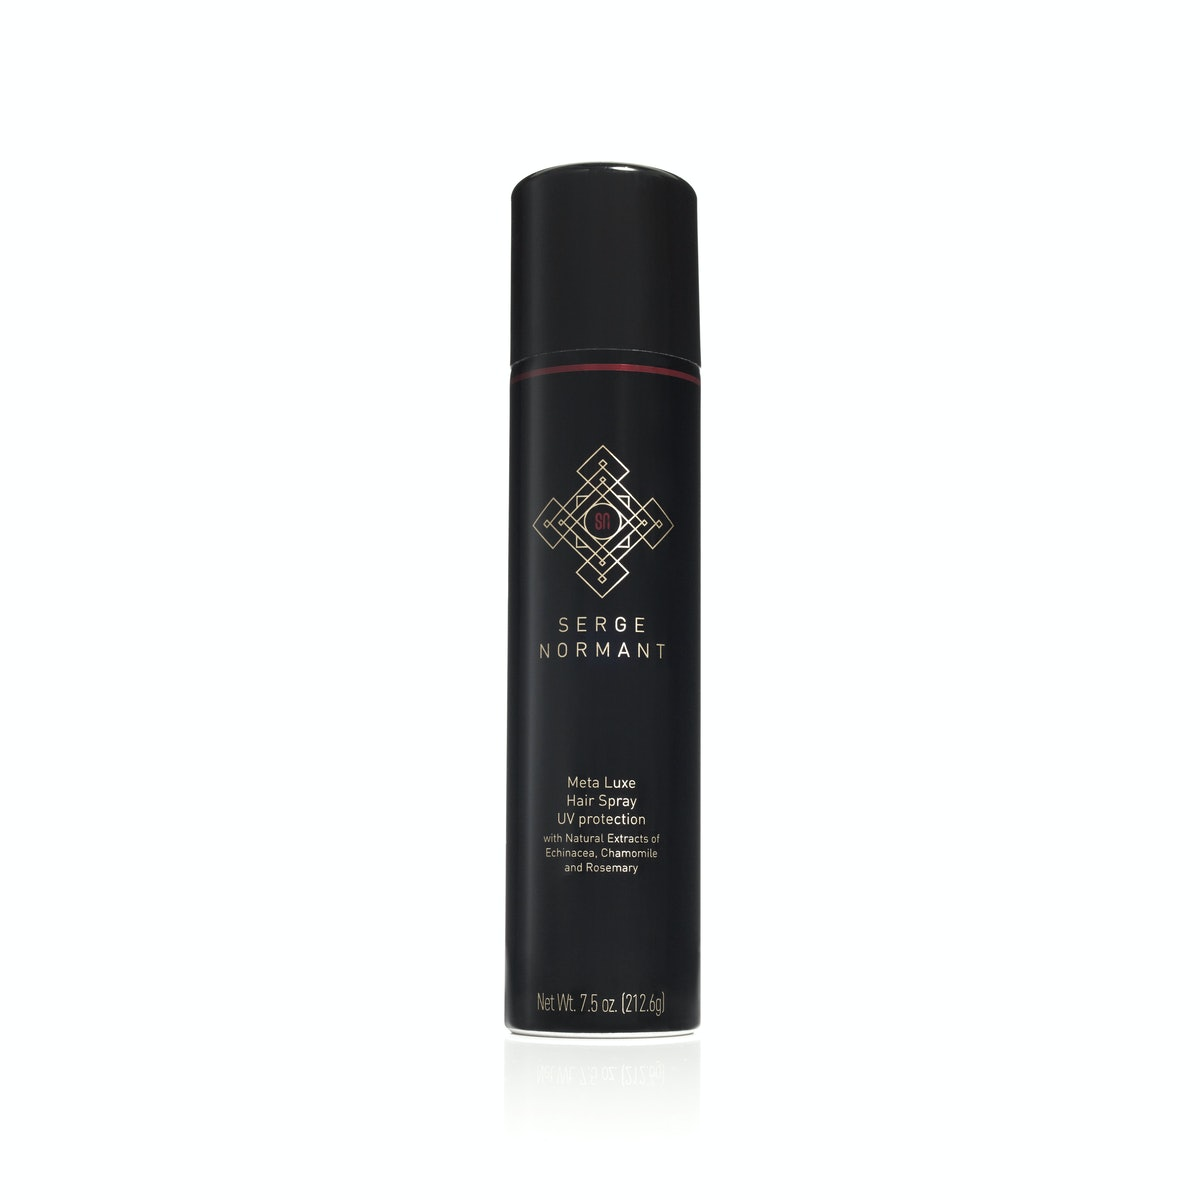 erge Normant Meta Luxe Hair Spray UV Protection